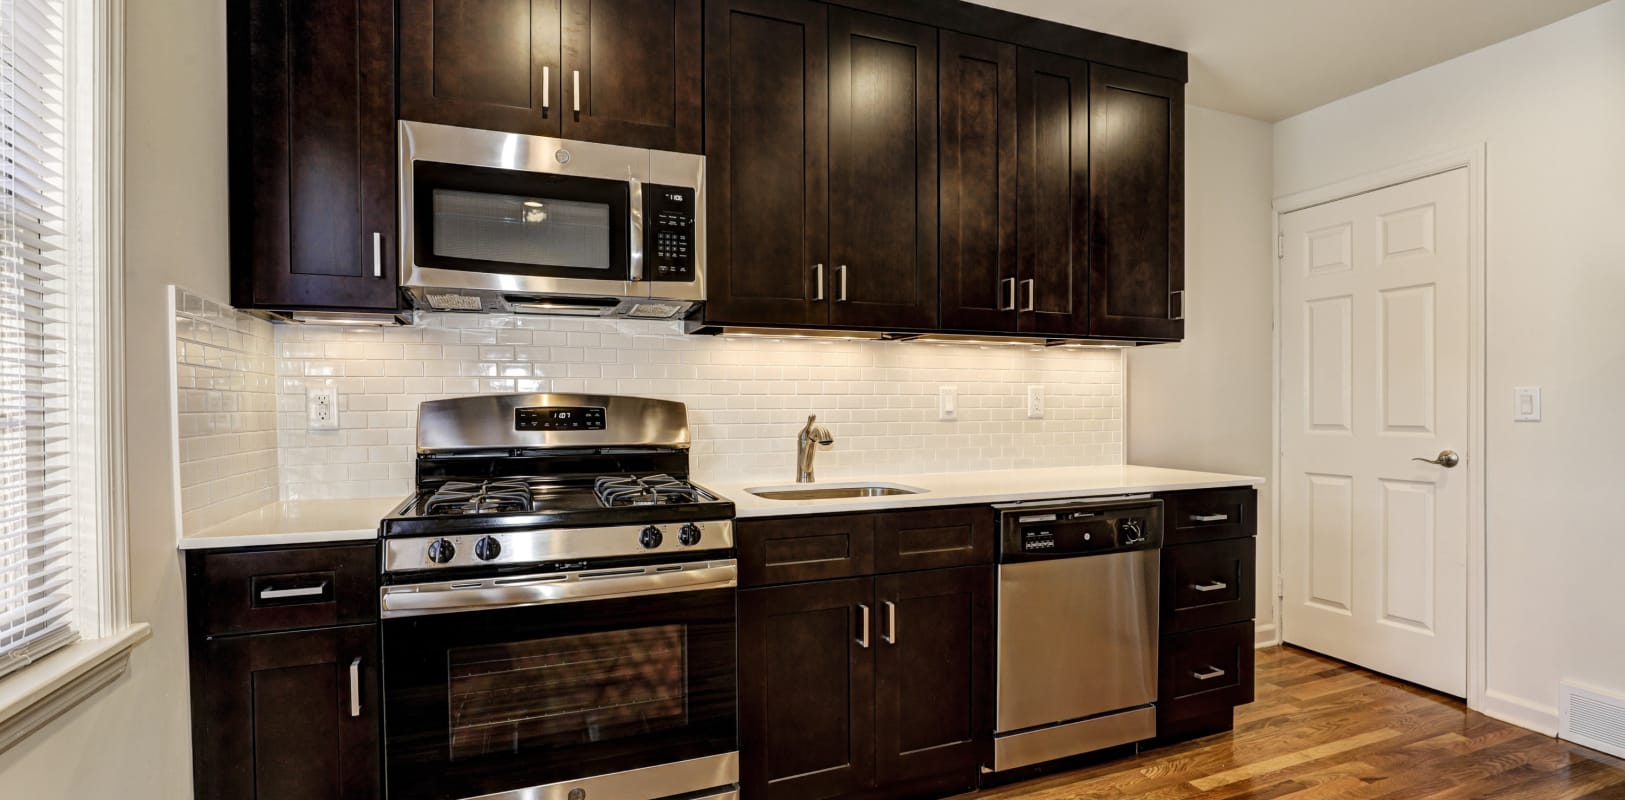 Kitchen with plenty of cabinet space at General Wayne Townhomes and Ridgedale Gardens in Madison, New Jersey